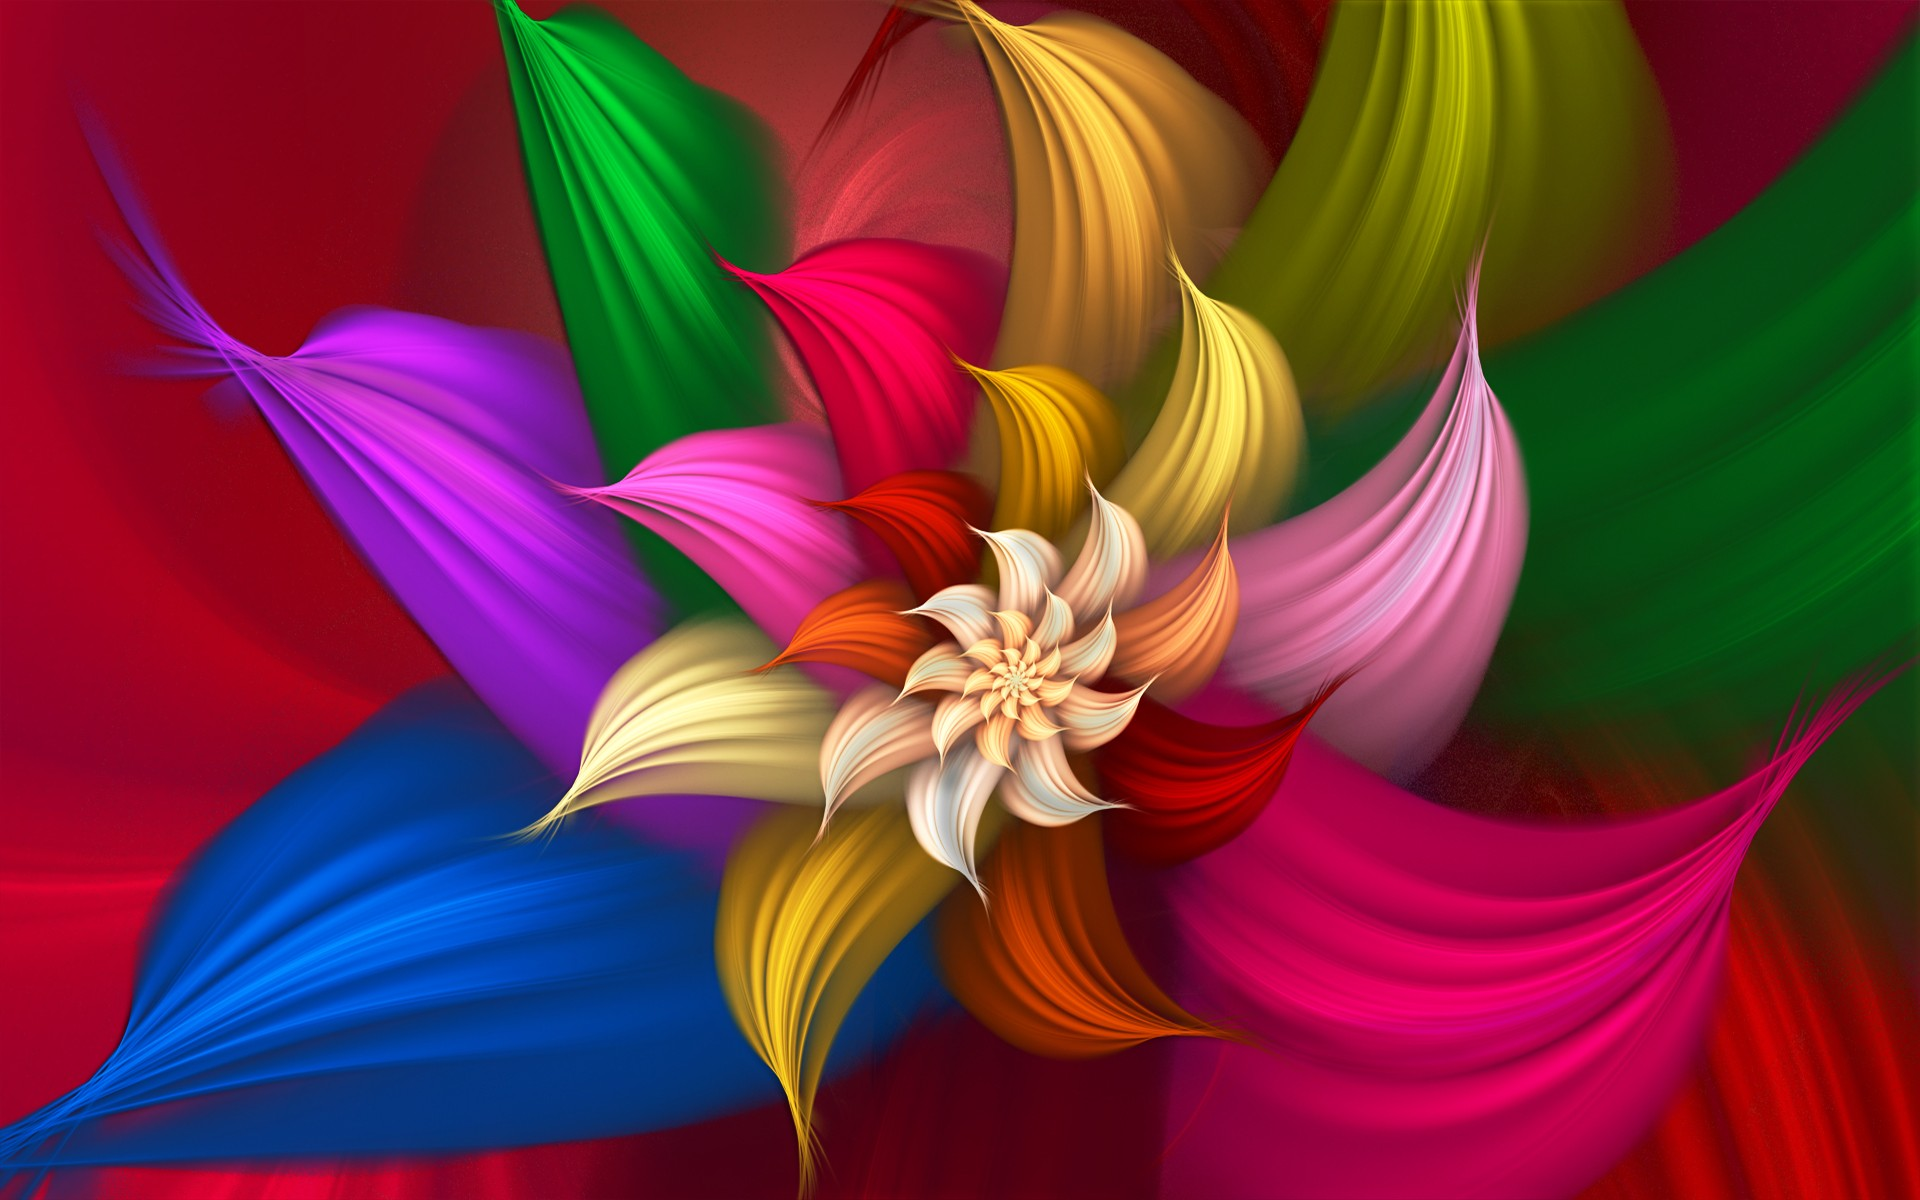 Colorful Abstract Flower wide Wallpaper   New HD Wallpapers 1920x1200